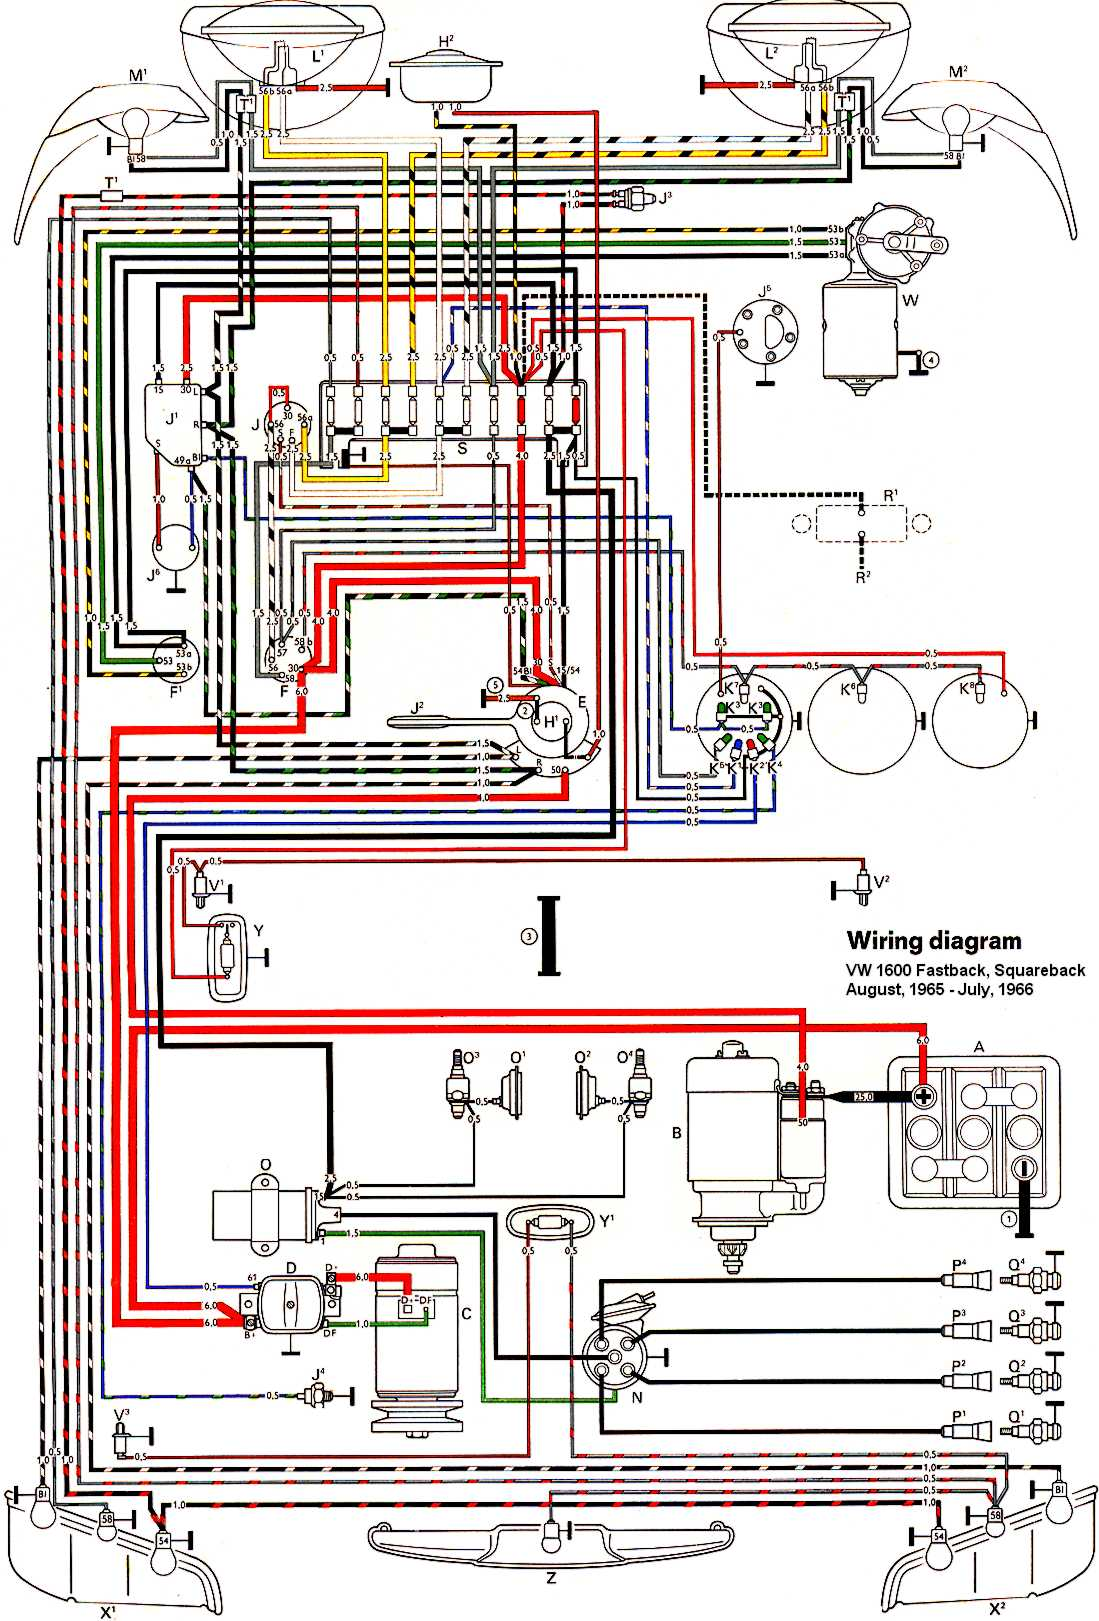 com type wiring diagrams 1966 usa 1966 from motor s wiring